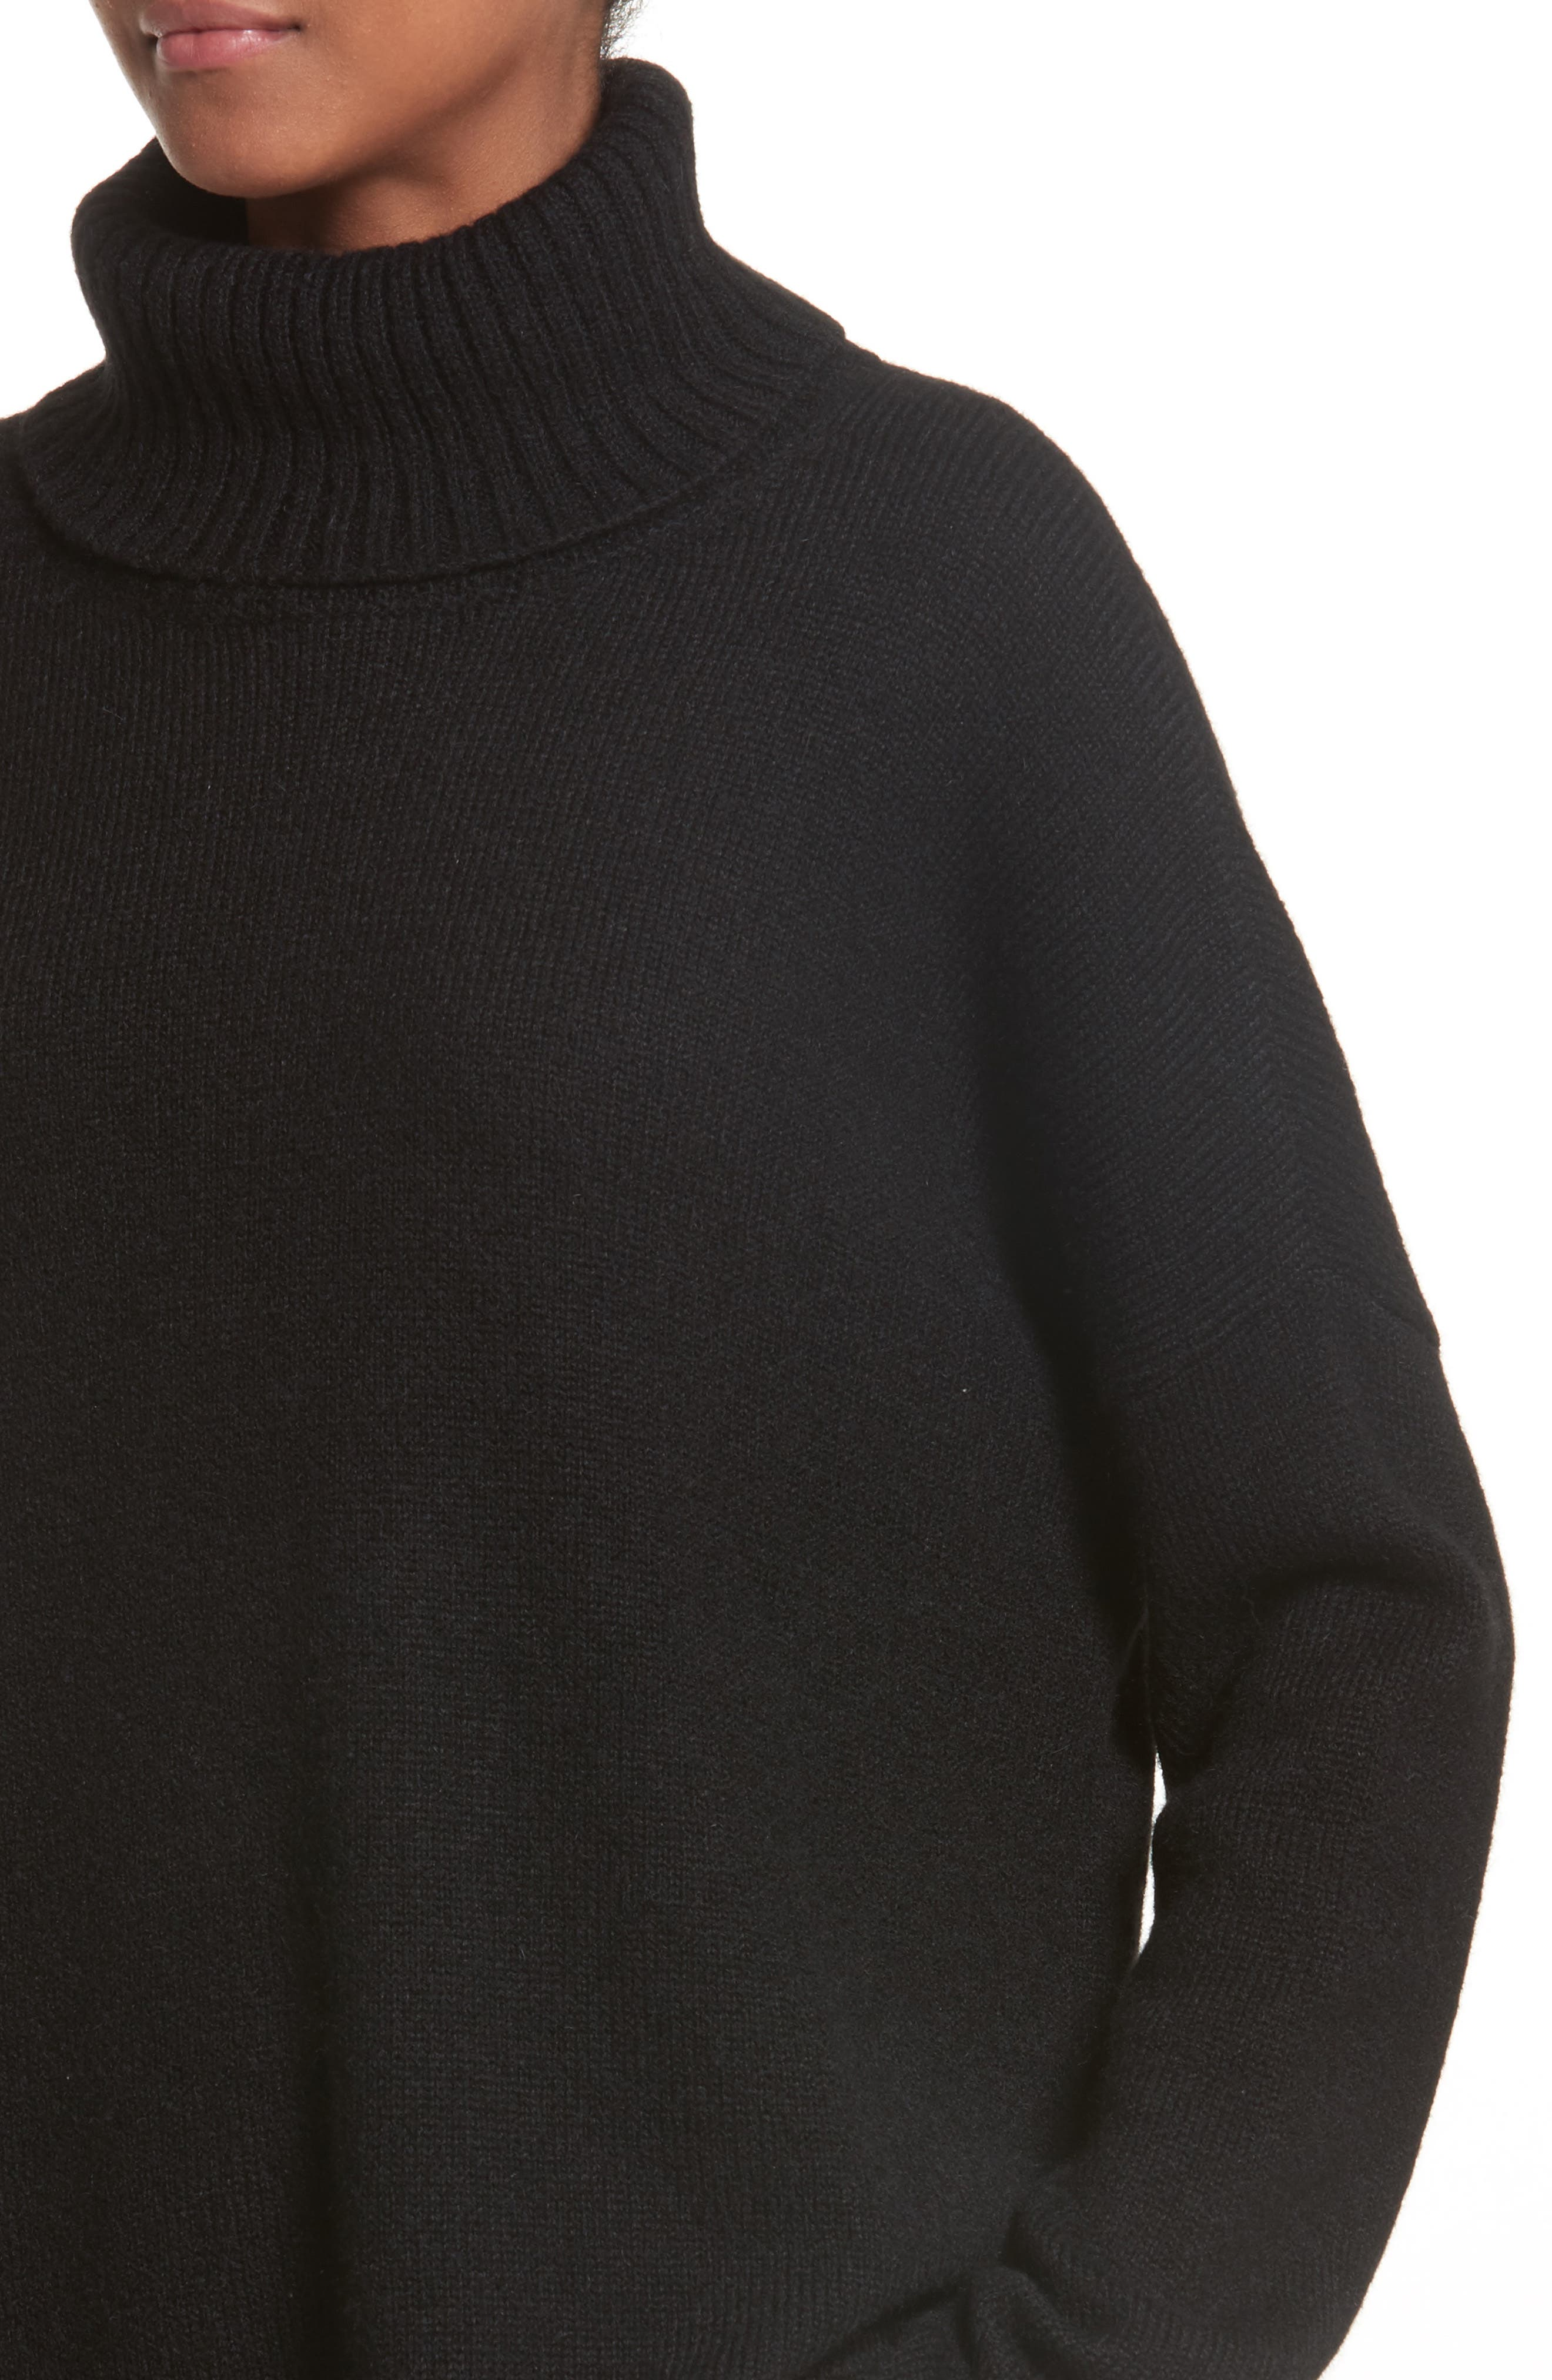 Alpaca Turtleneck Sweater,                             Alternate thumbnail 4, color,                             001